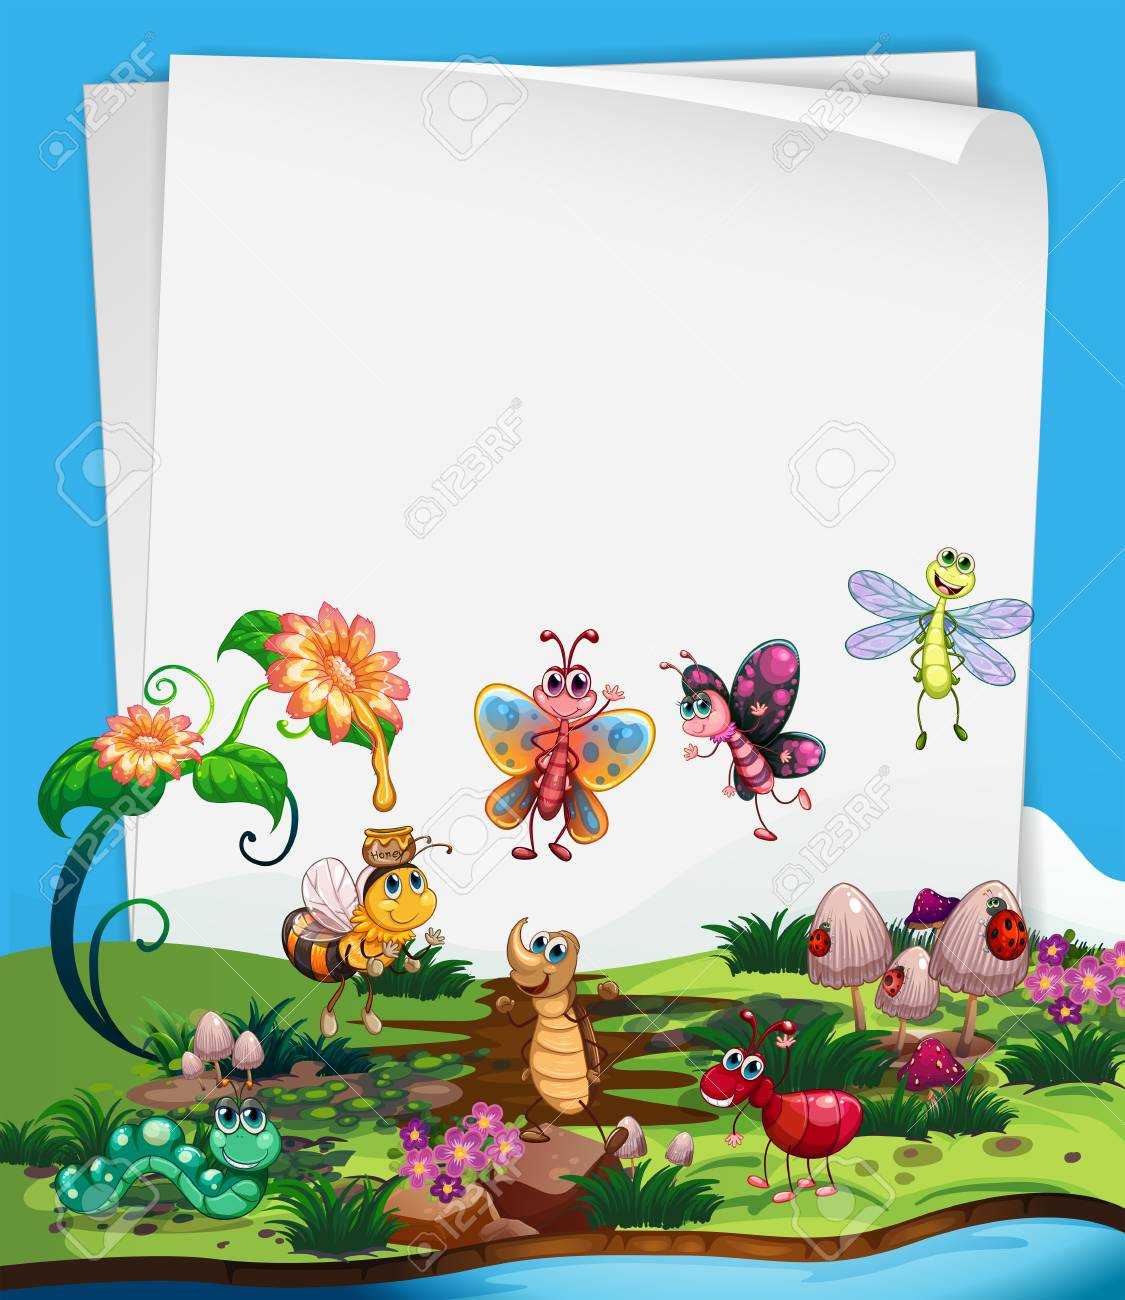 paper template with insects in garden illustration royalty free